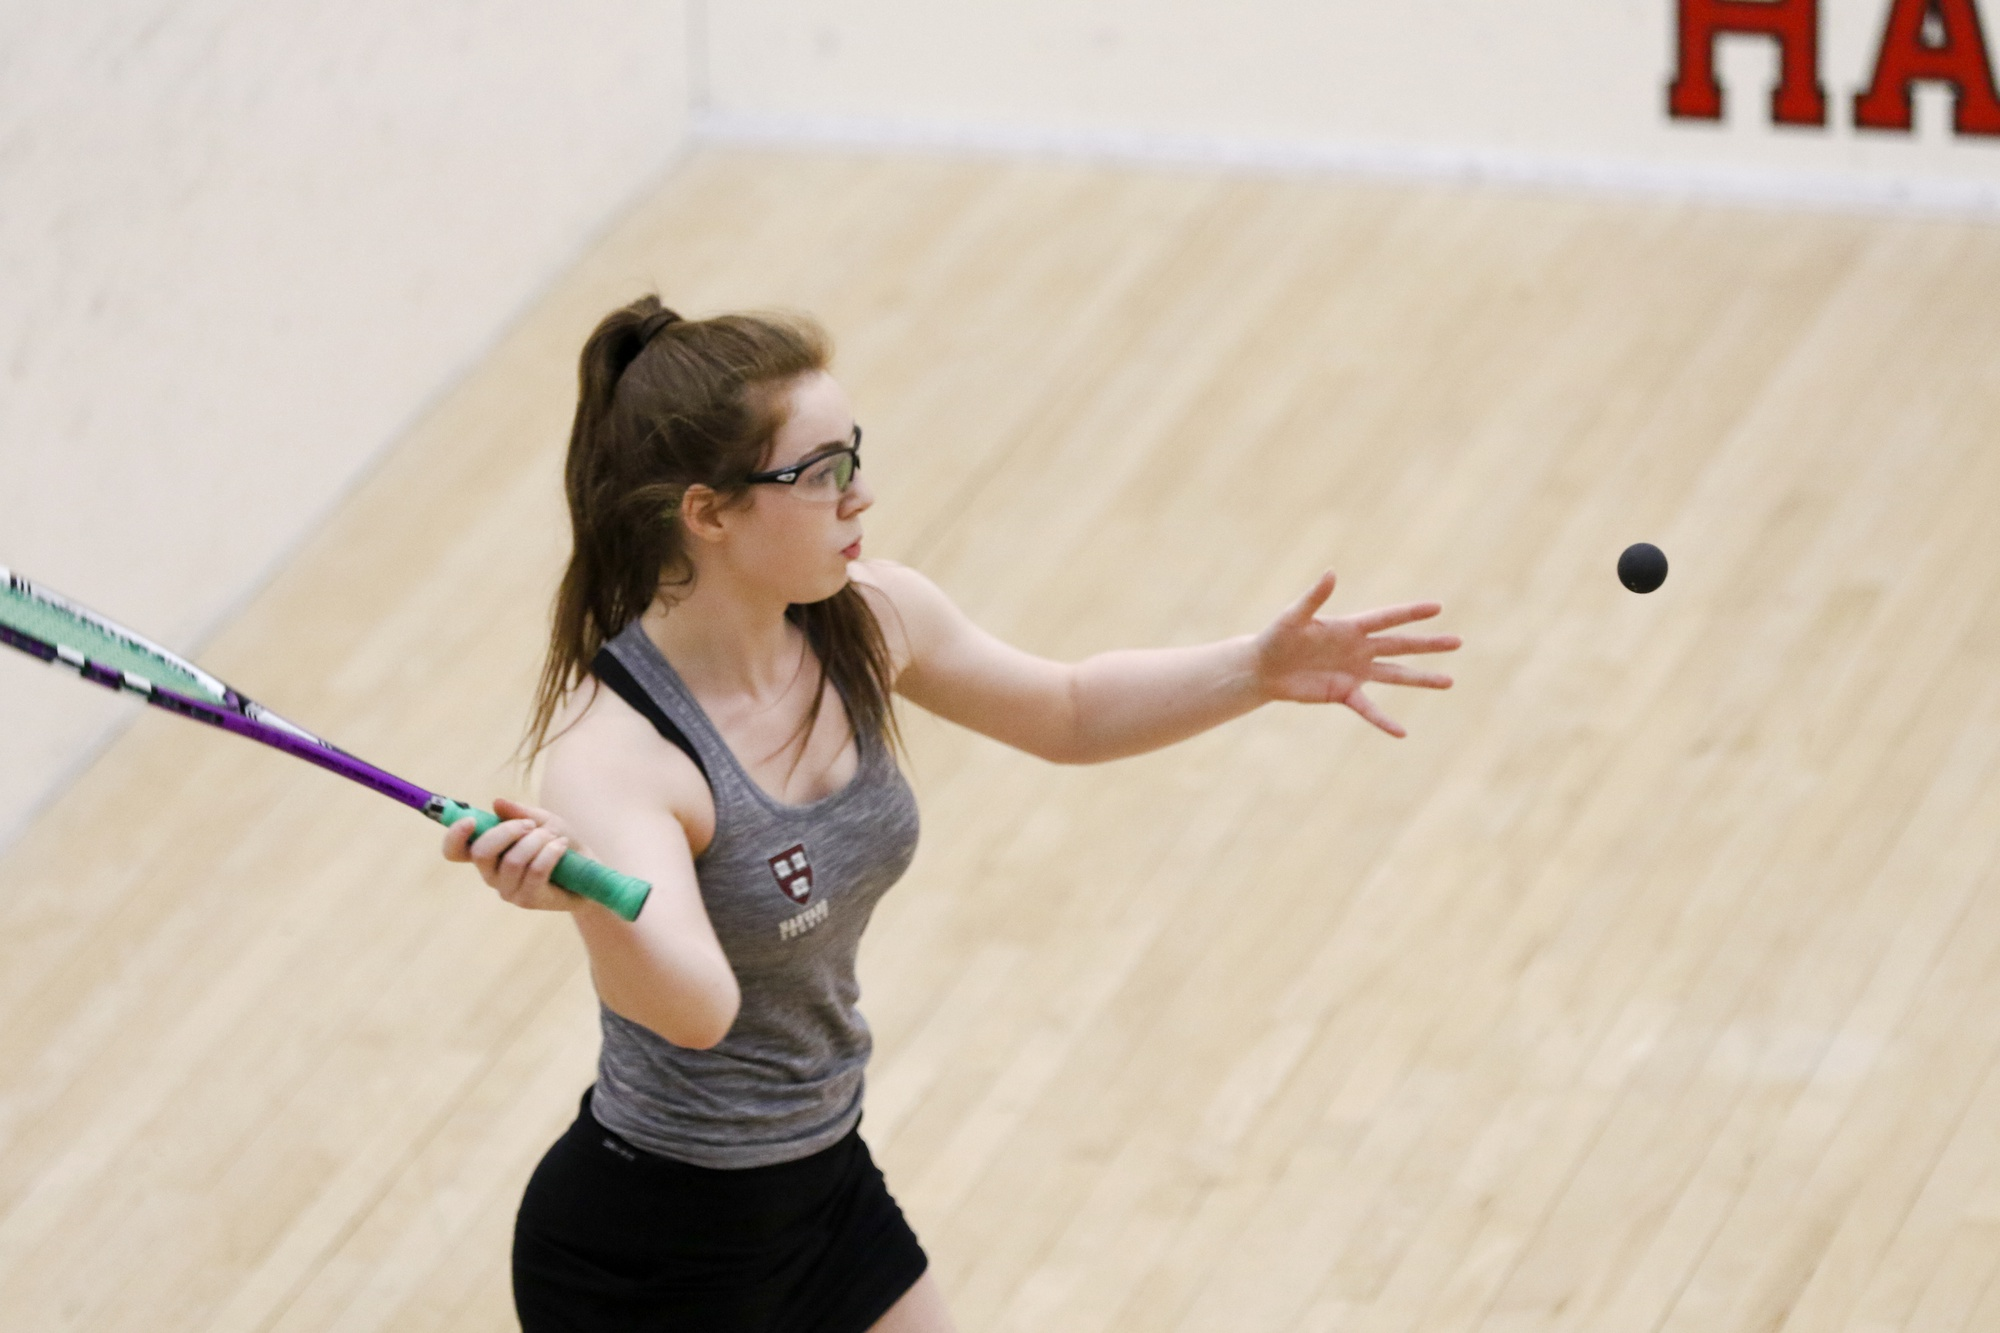 Dartmouth was no challenge for the Harvard men's and women's squash teams.